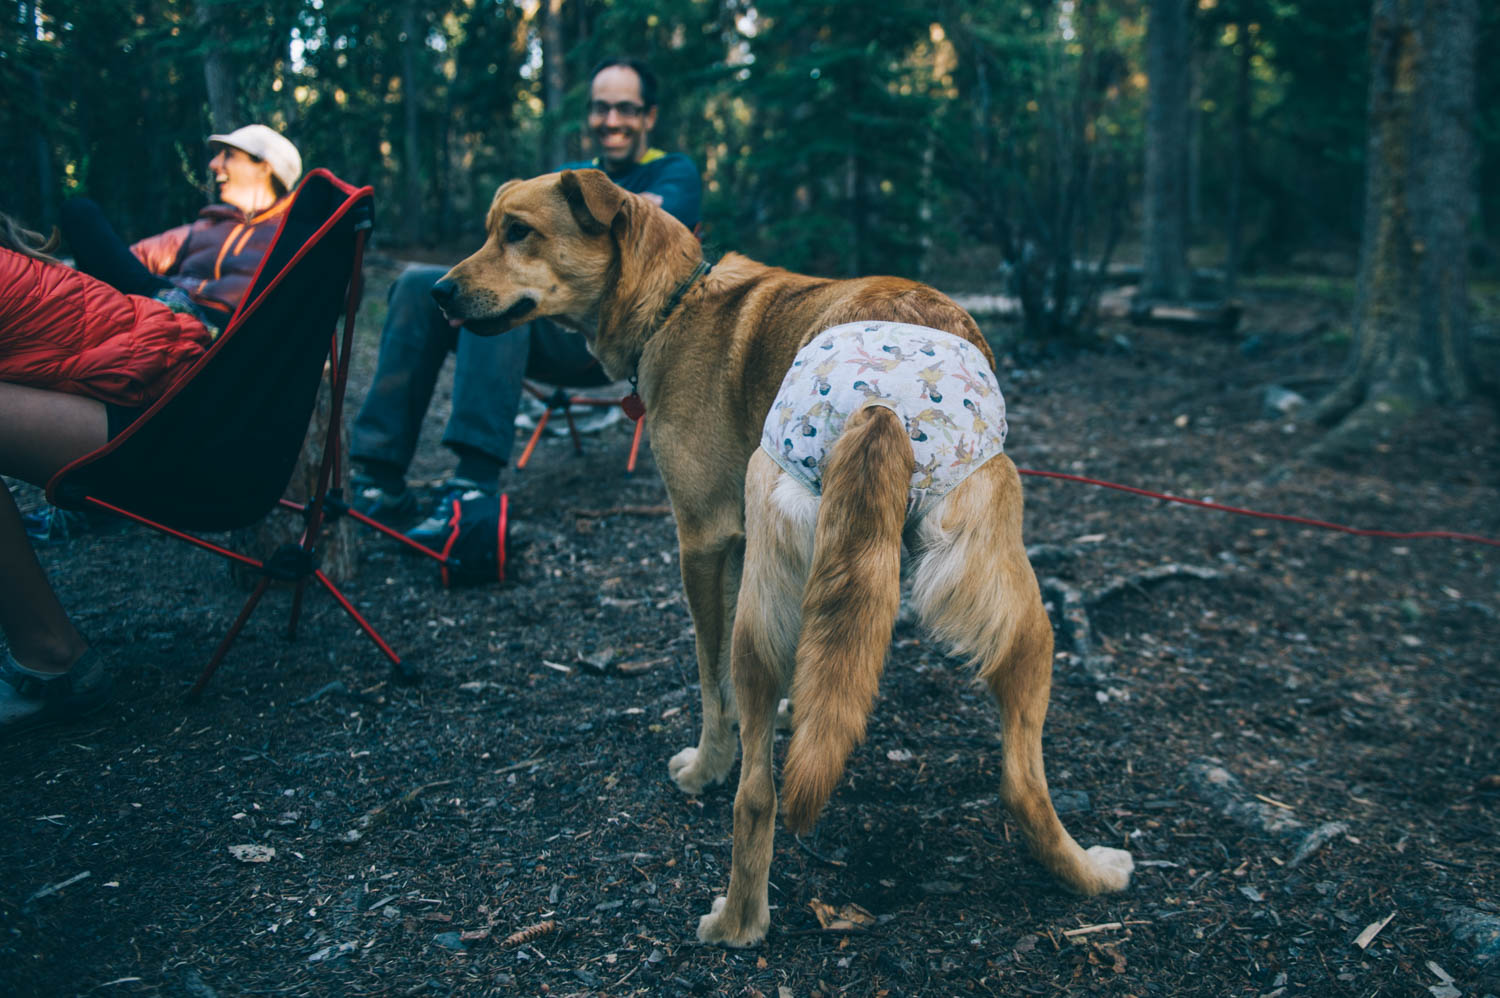 That time we made you wear underwear to keep you from licking your stitches...